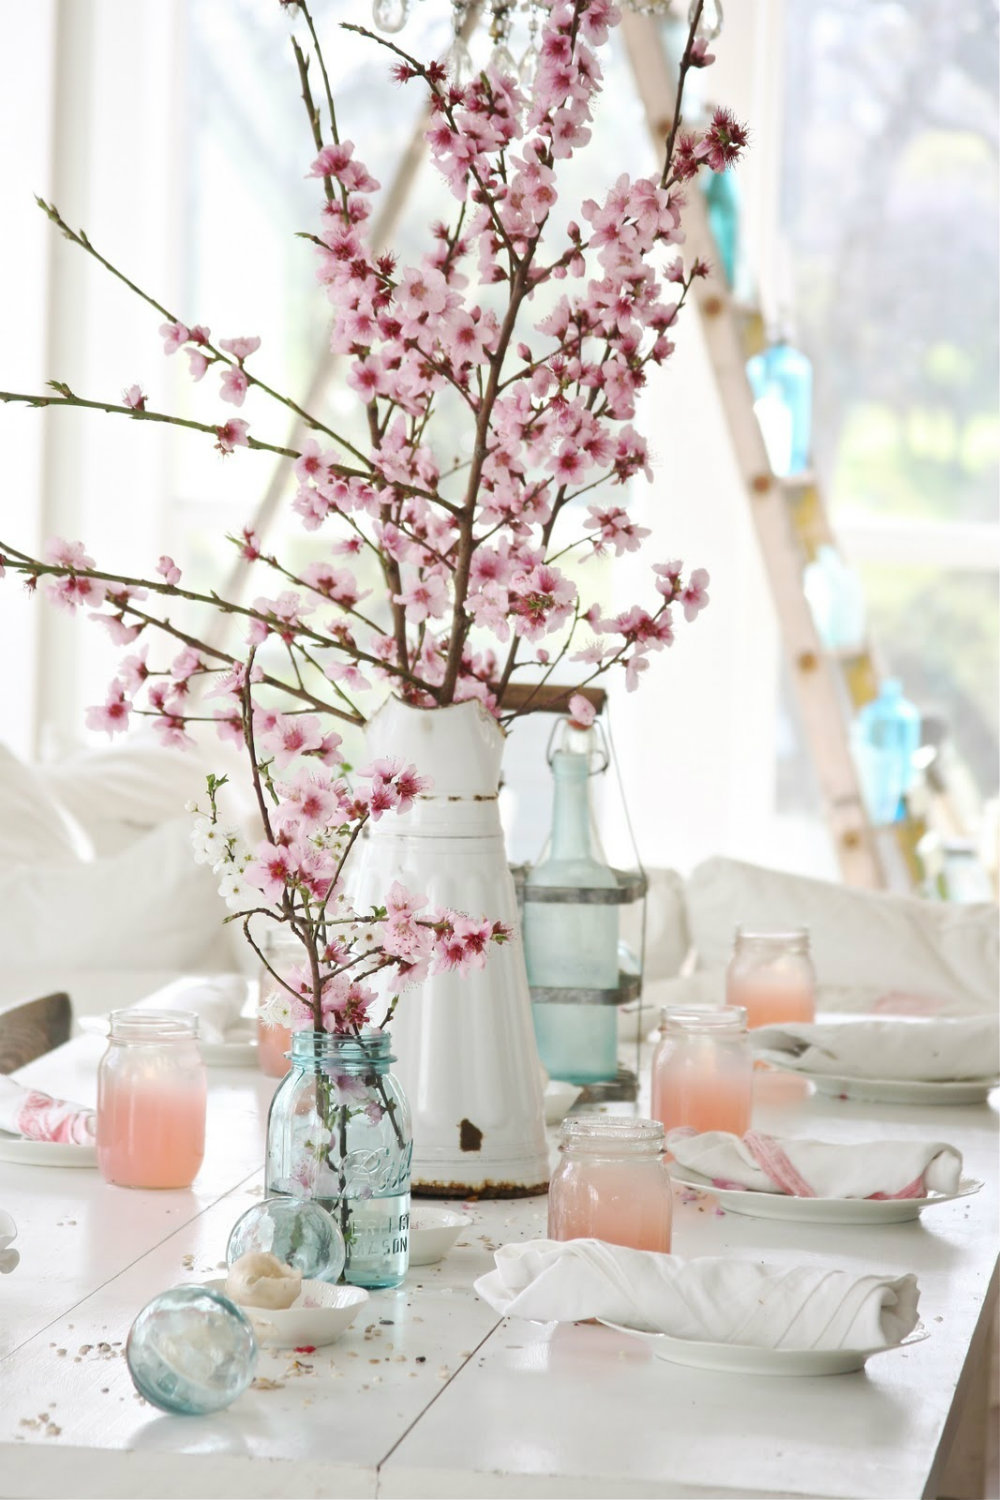 Stunning Easter Table Setting Ideas You Will Love 03 easter table setting ideas Stunning Easter Table  sc 1 st  Luxxu : easter table setting ideas - pezcame.com